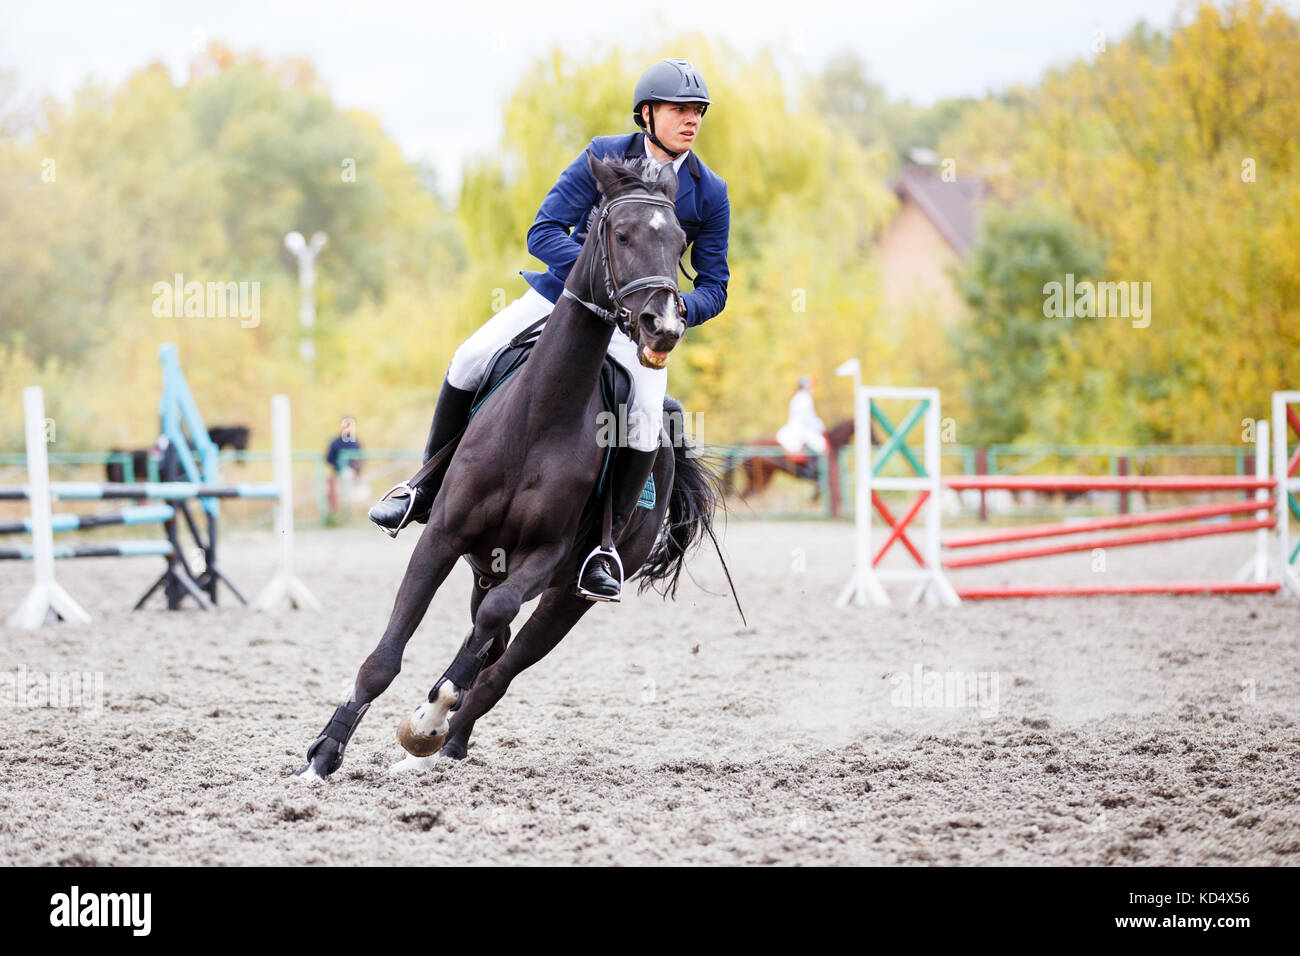 Dark Bay Horse Galloping High Resolution Stock Photography And Images Alamy